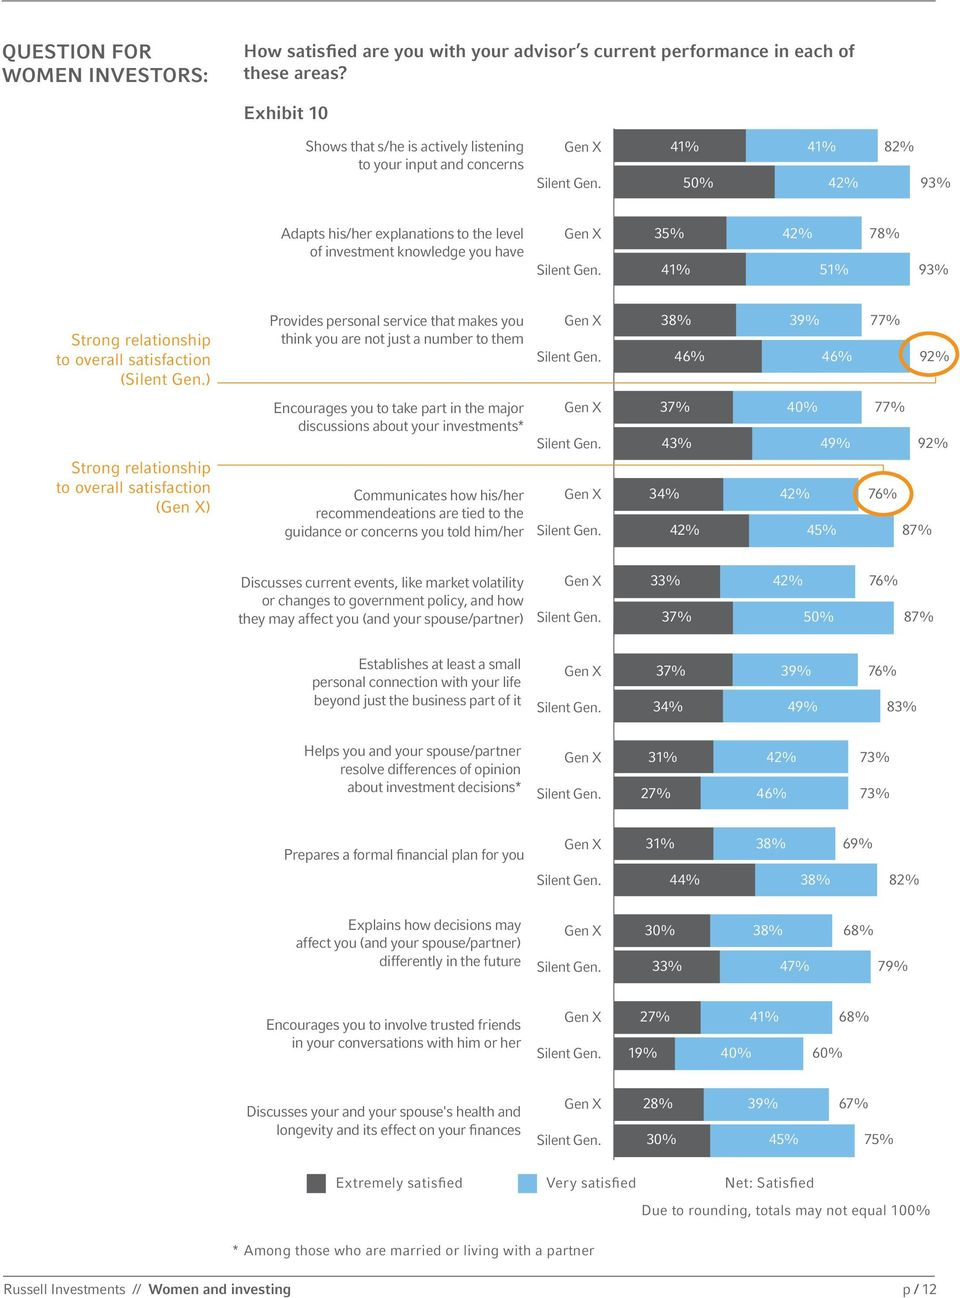 Strong relationship to overall satisfaction () Provides personal service that makes you think you are not just a number to them 38% 39% 77% 46% 46% 92% Strong relationship to overall satisfaction ()